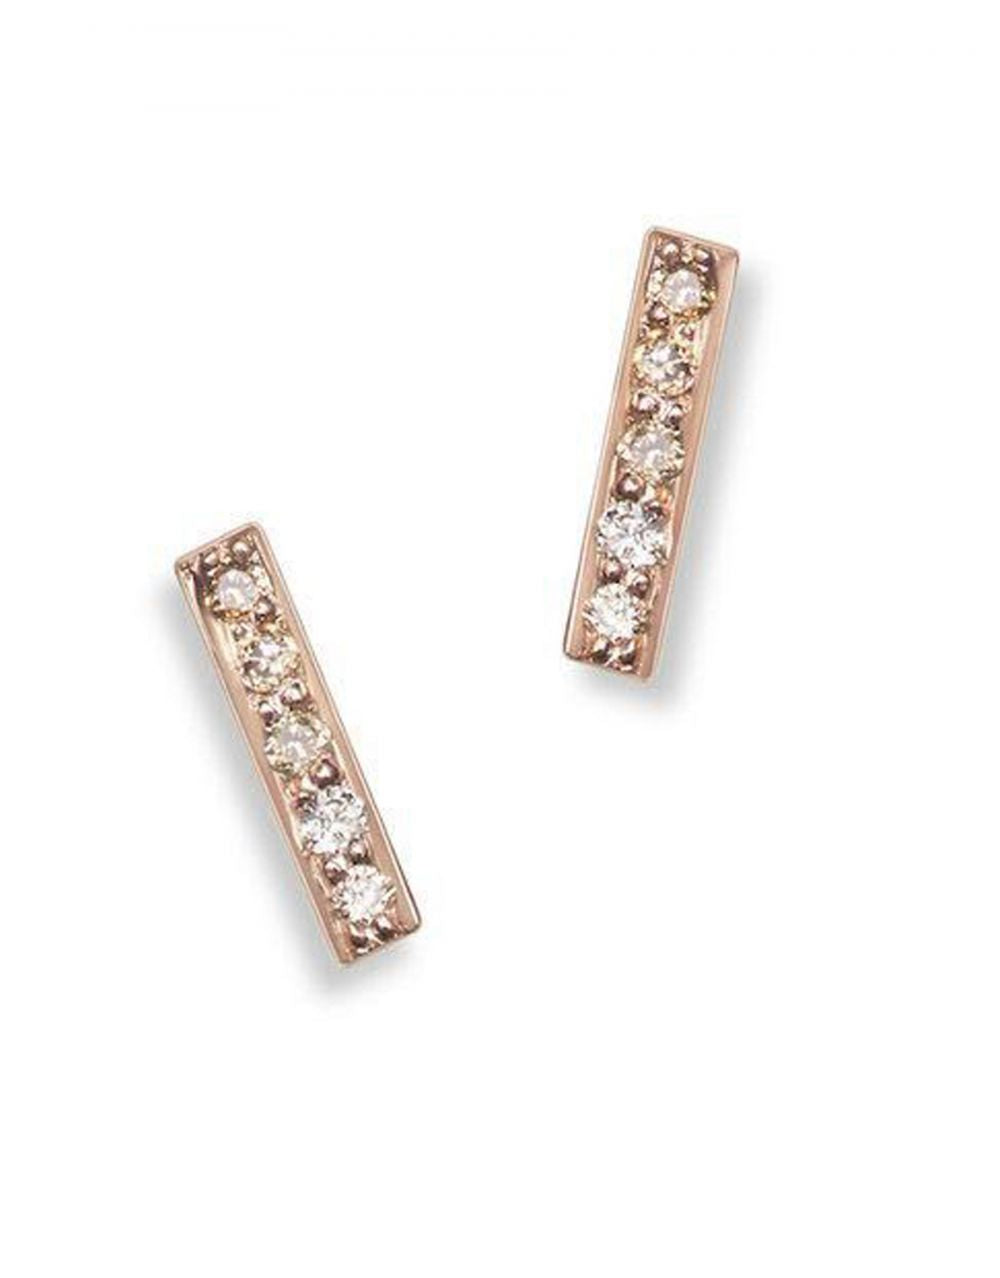 Mini Pavé Bar Stud<br /><i><small>14K Rose Gold with White Diamonds</small></i><br /> - Eddera